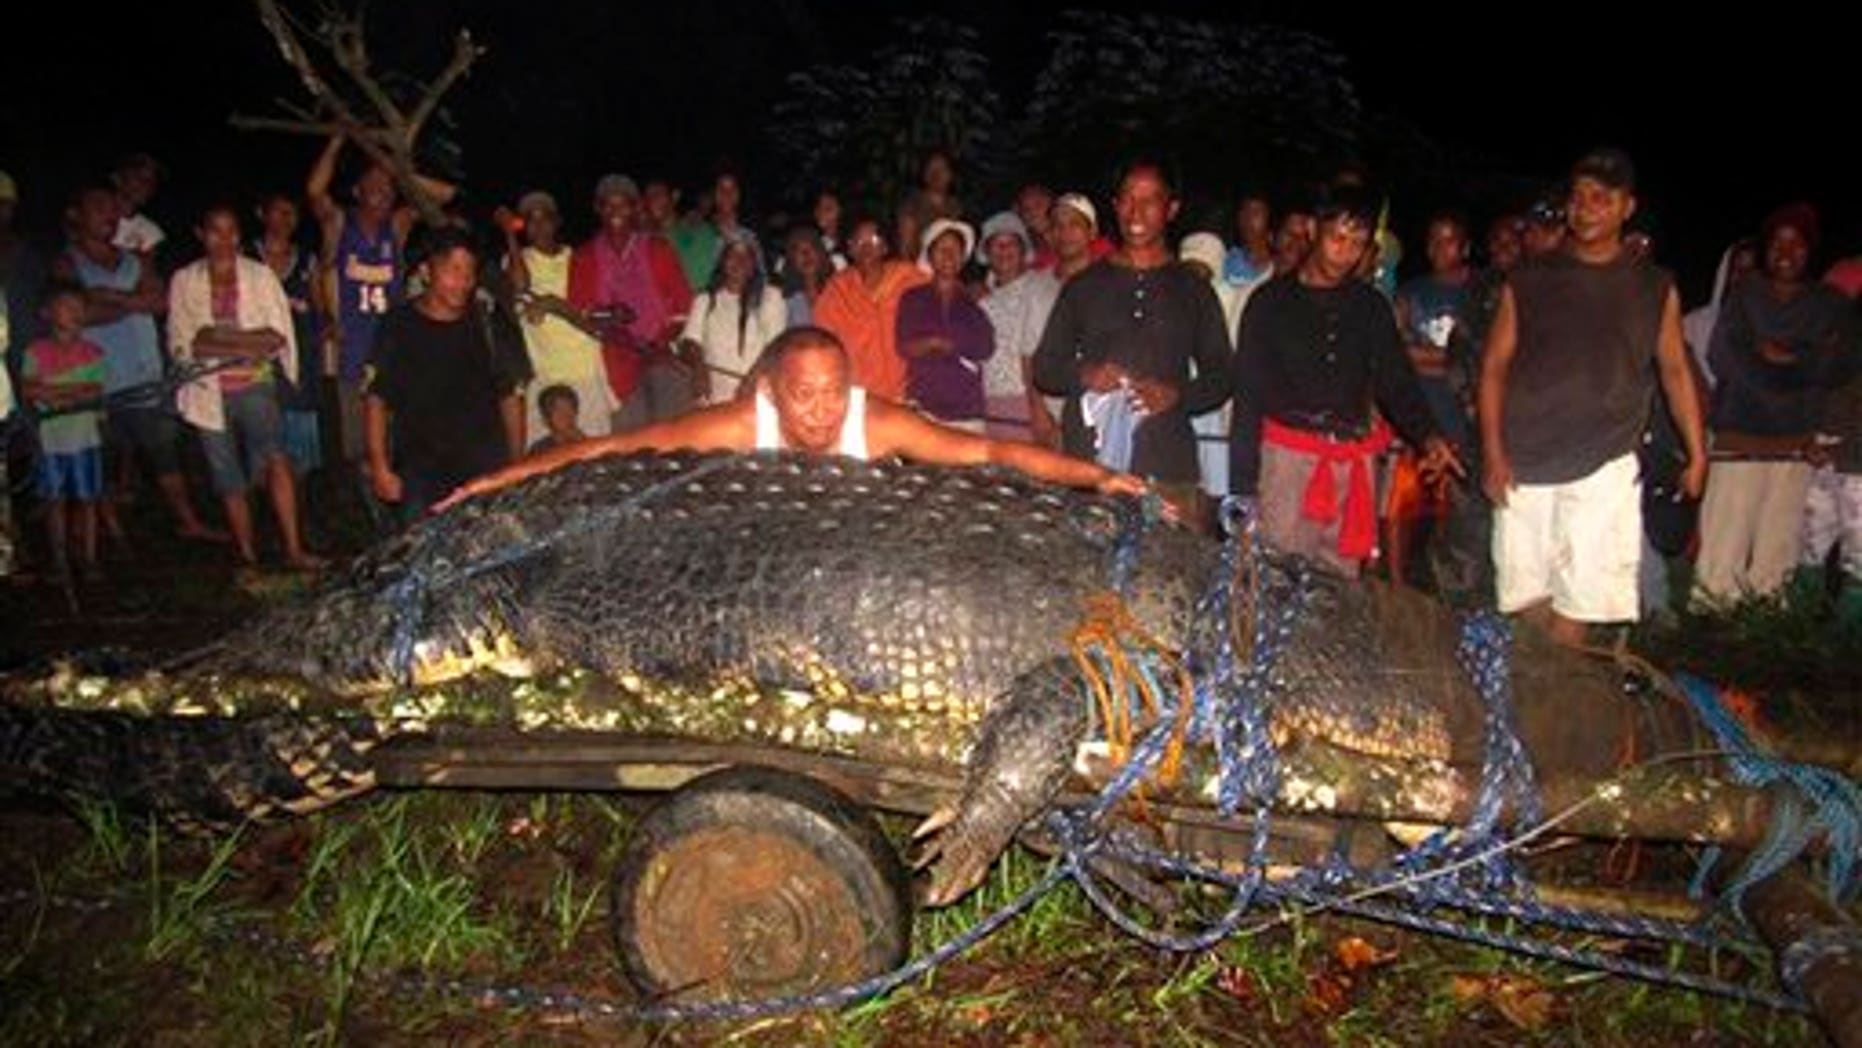 Sept. 4, 2011: Mayor Cox Elorde of Bunawan township, Agusan del Sur Province, pretends to measure a huge crocodile which was captured by residents and crocodile farm staff along a creek in Bunawan.